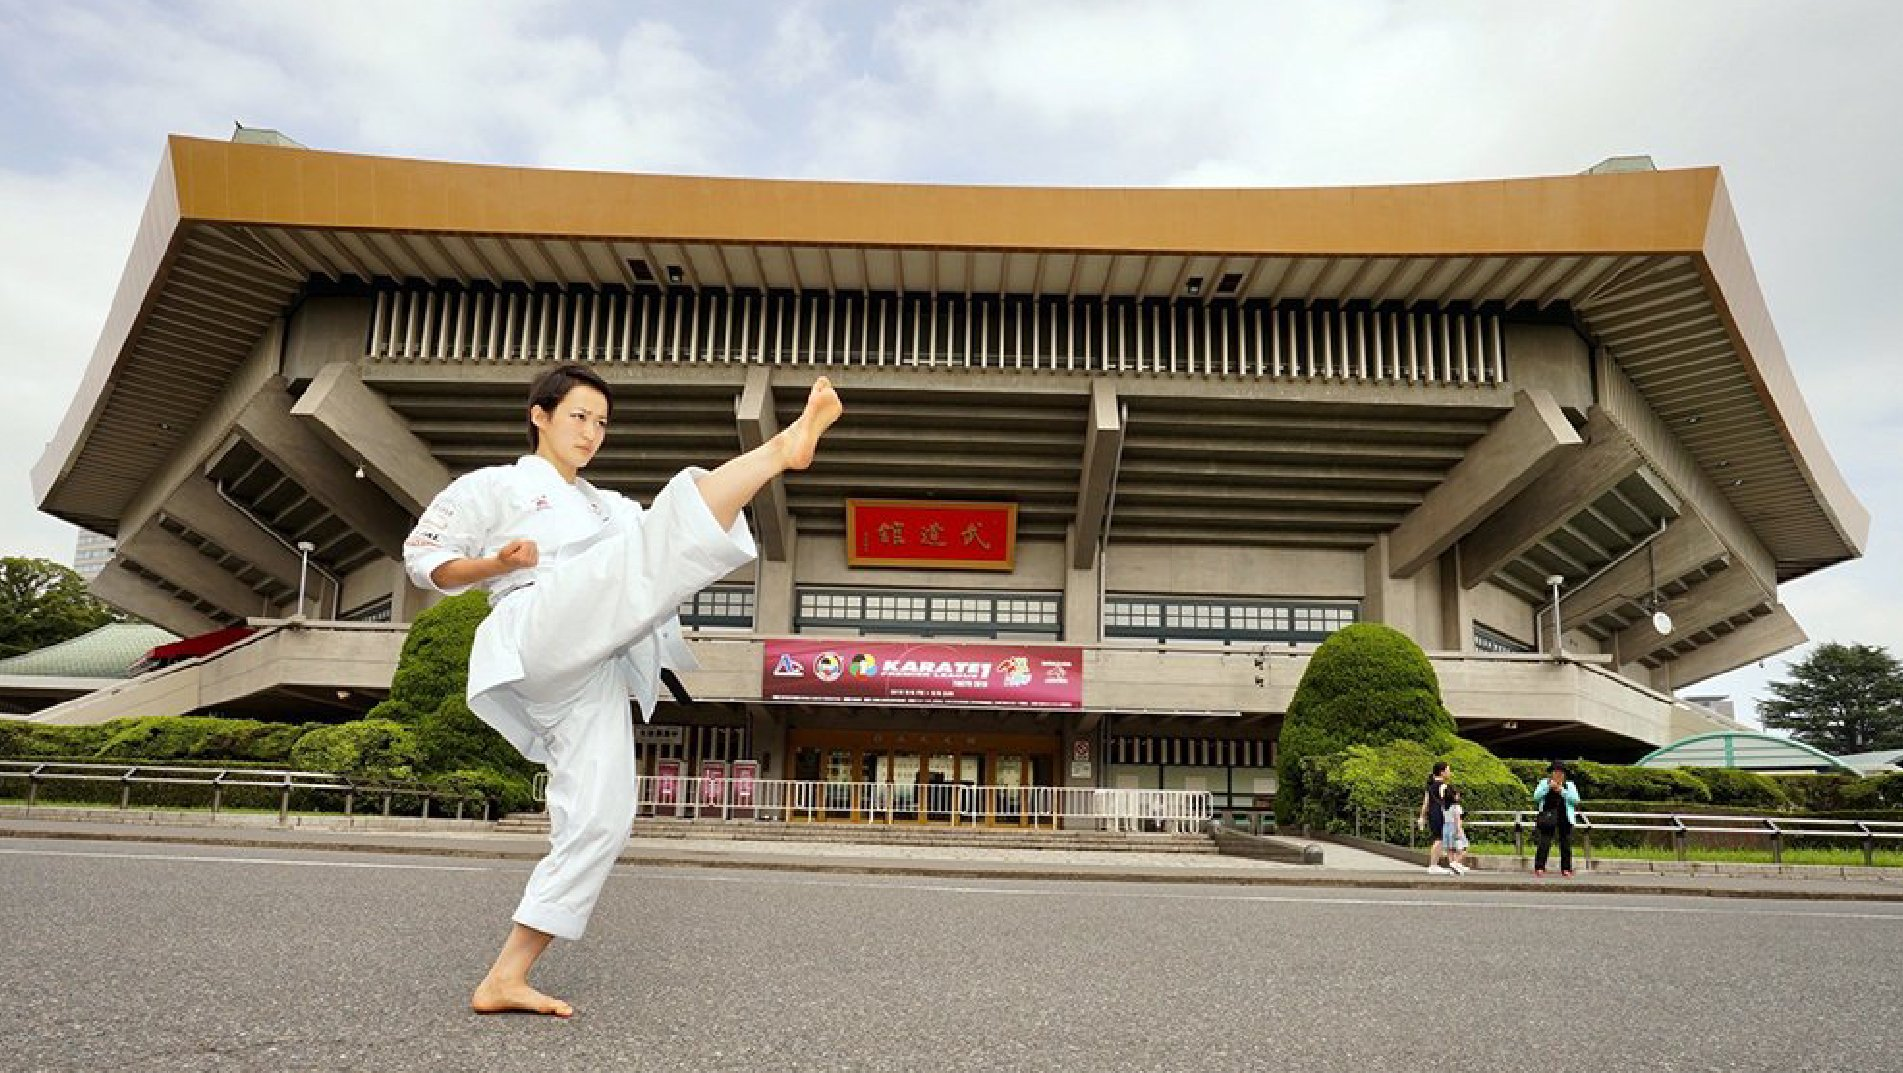 #KarateTakesCities: Japanese karatekas ready to live Olympic dream in Tokyo